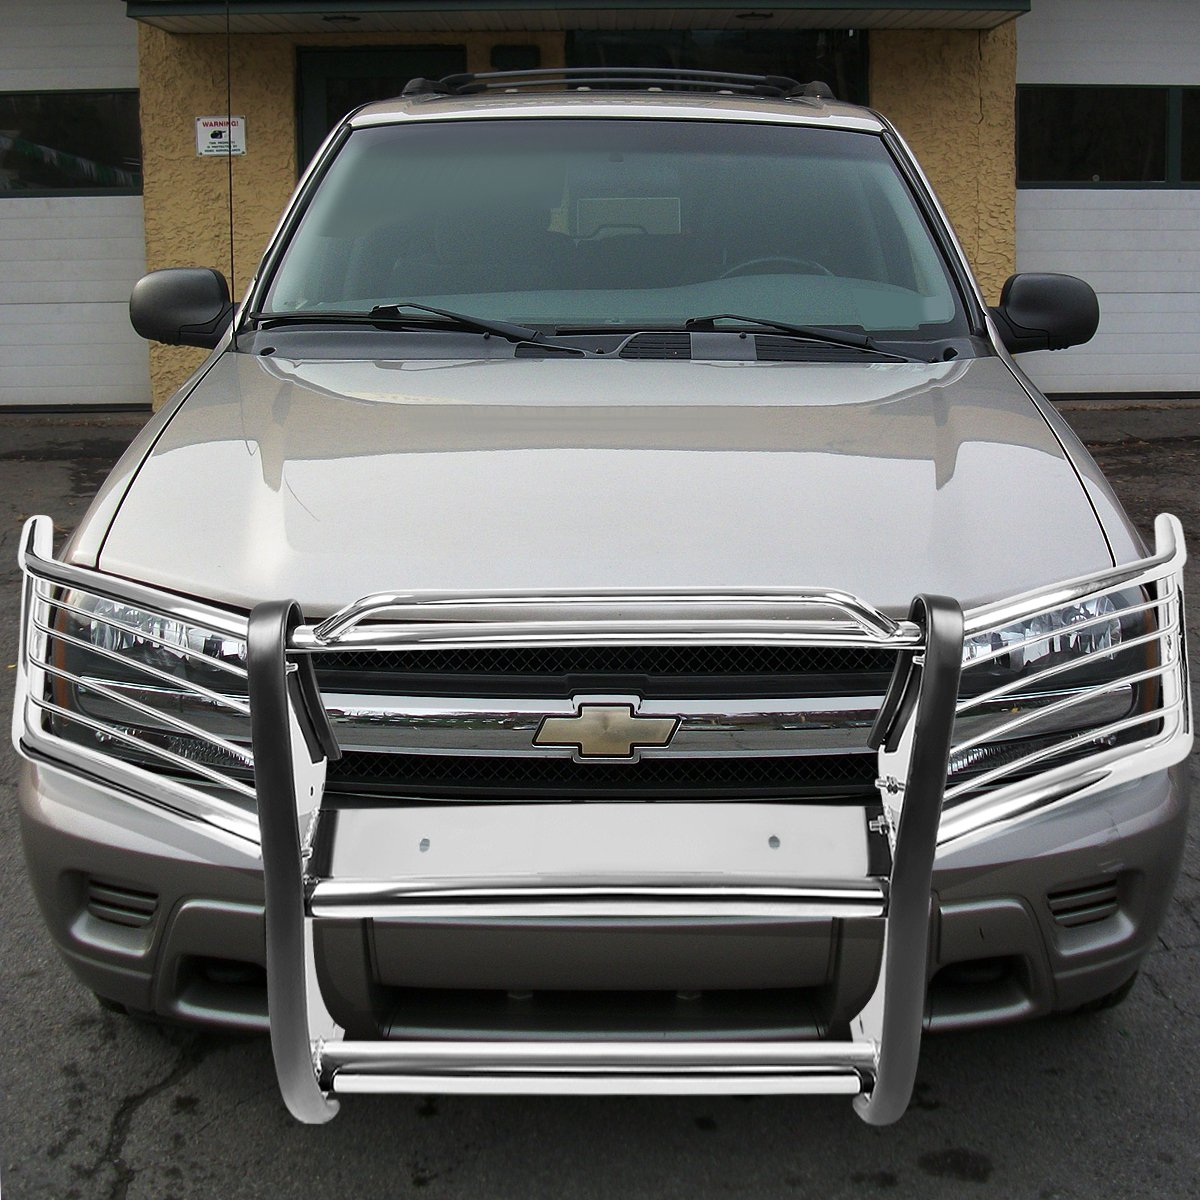 For Chevy Trailblazer EXT Front Bumper Protector Brush Grille Guard Chrome